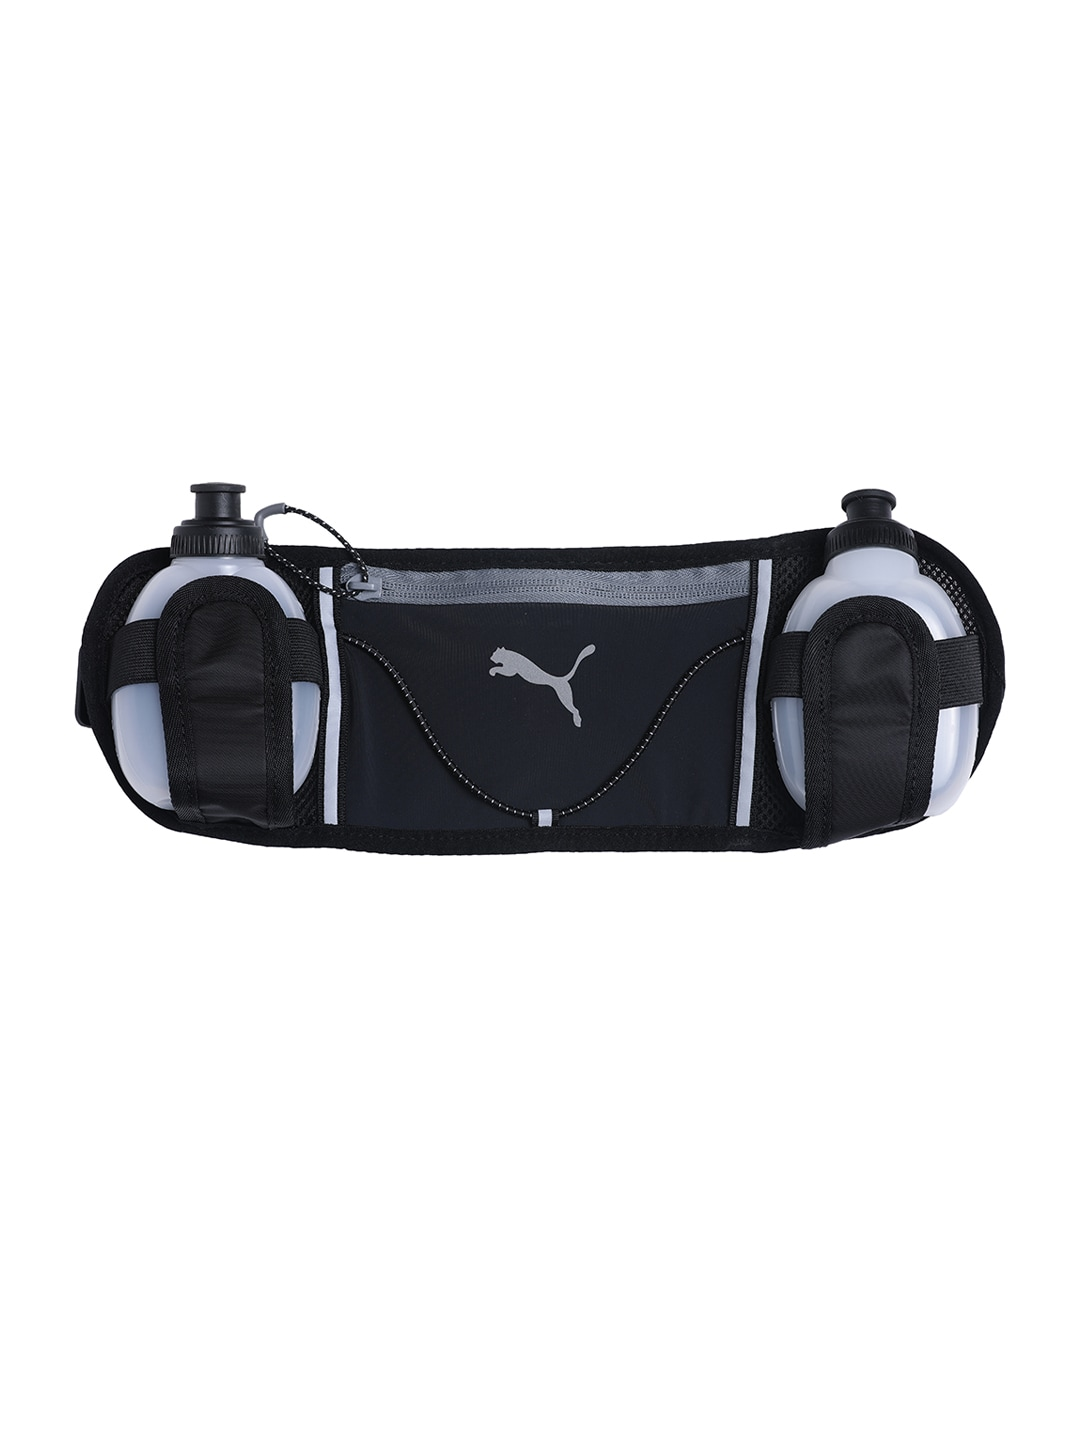 Tablet Pouches Waist Pouch Travel Accessory - Buy Tablet Pouches Waist Pouch  Travel Accessory online in India 4a3d43dc0512d